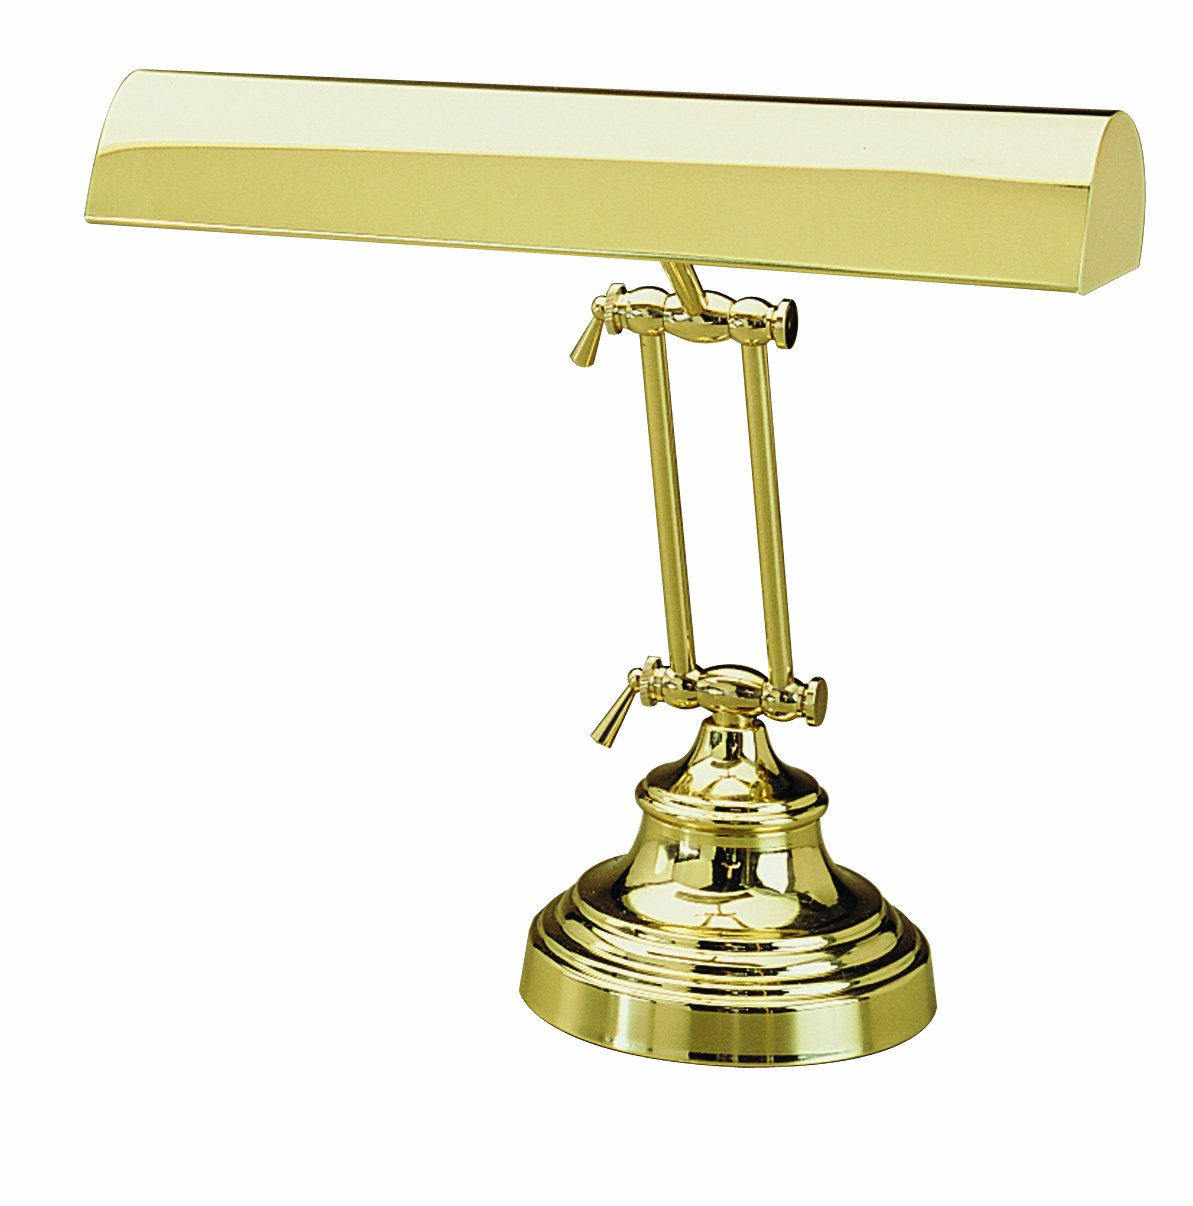 House of Troy P14-231-61 12-Inch Portable Desk/Piano Hinged Lamp, Polished Brass